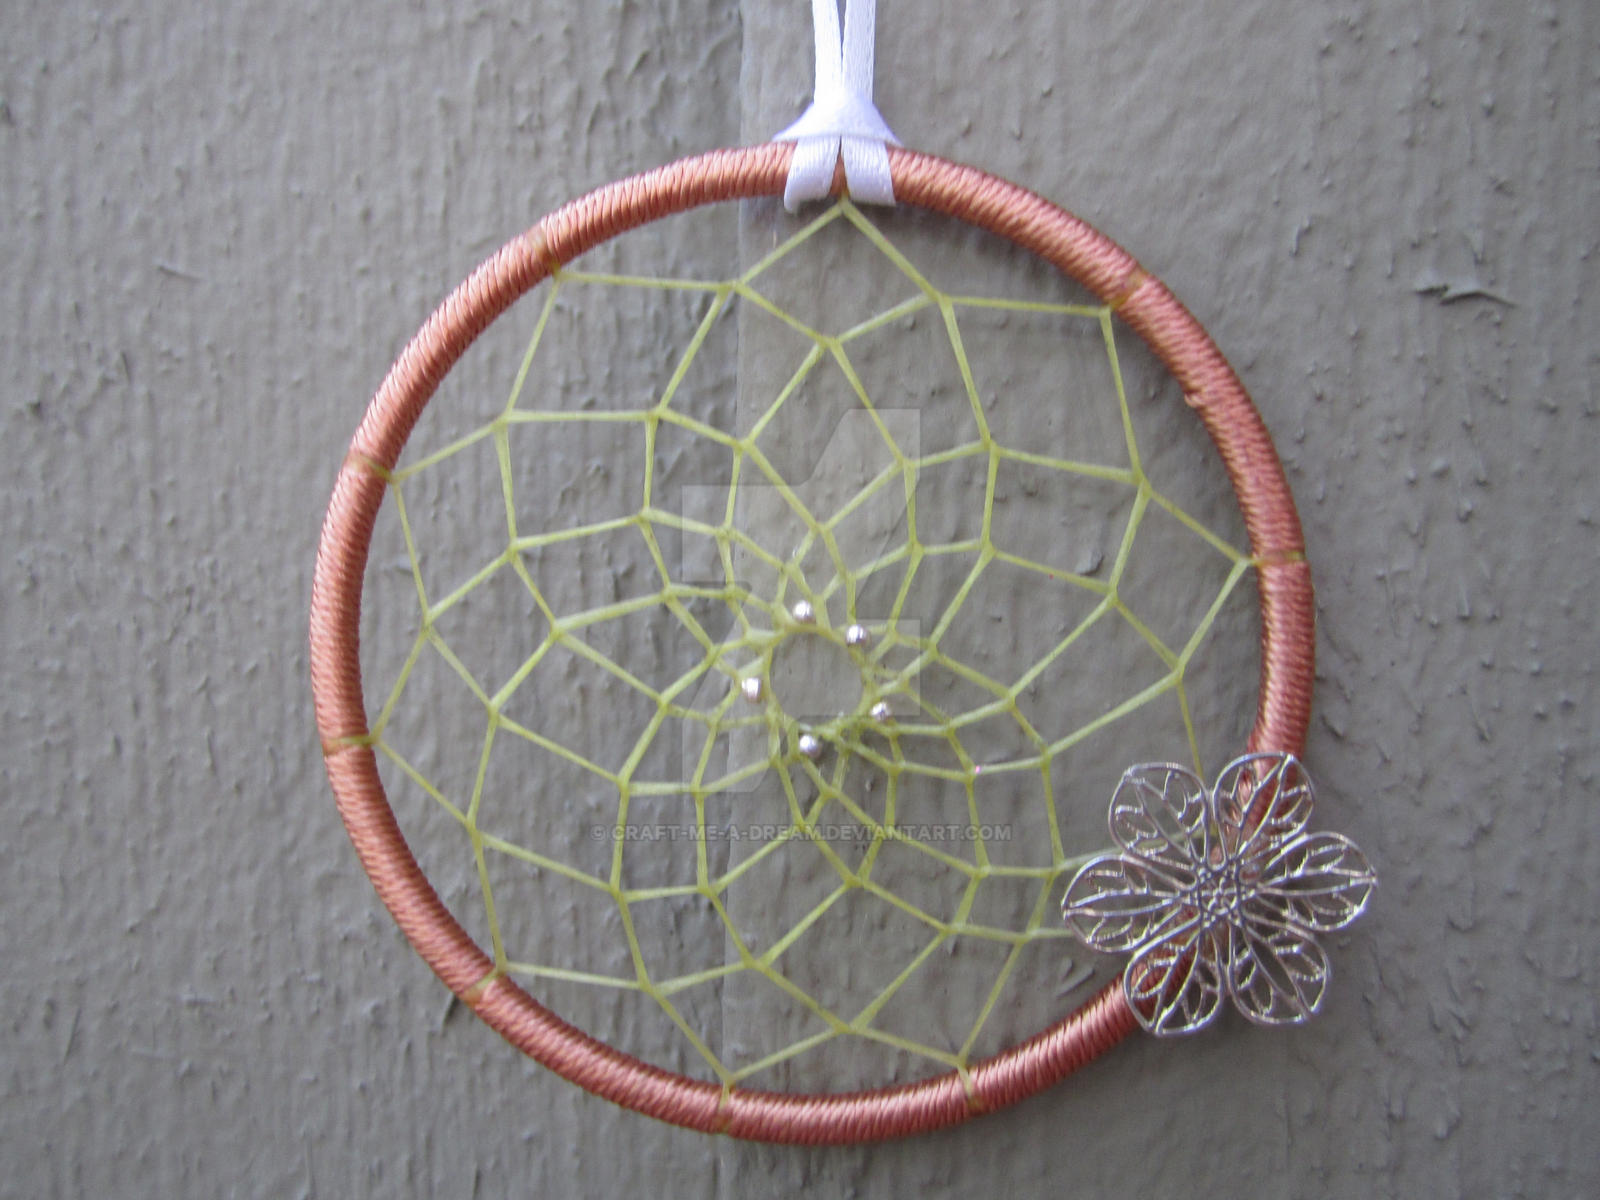 Orange Flower Dream Catcher by Craft-Me-A-Dream